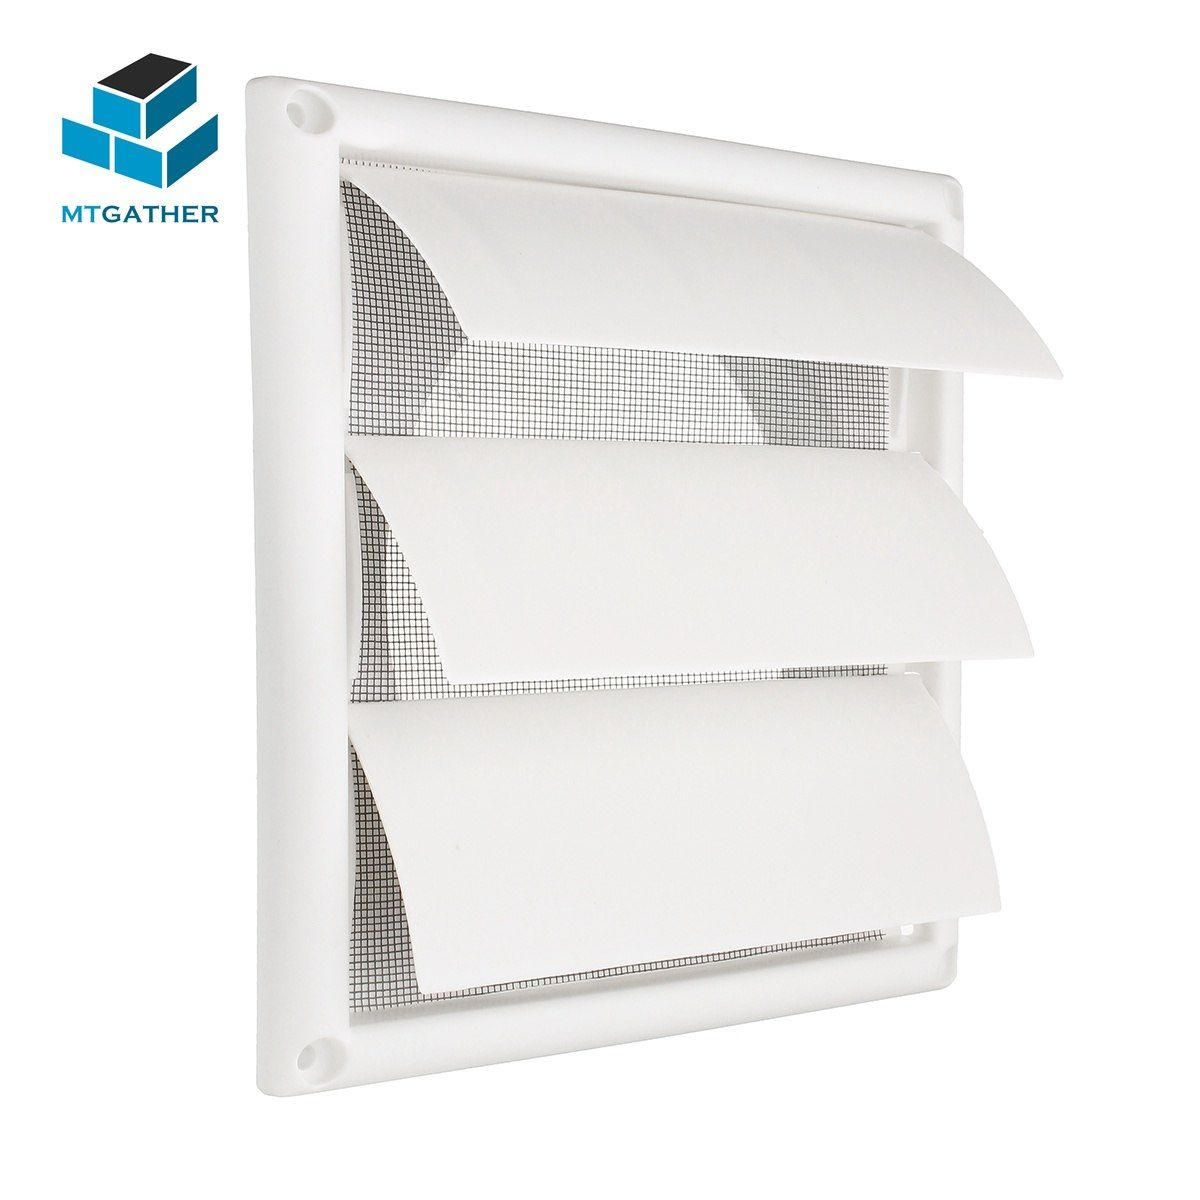 Mtgather Air Vent Grille Ventilation Cover Plastic White Wall